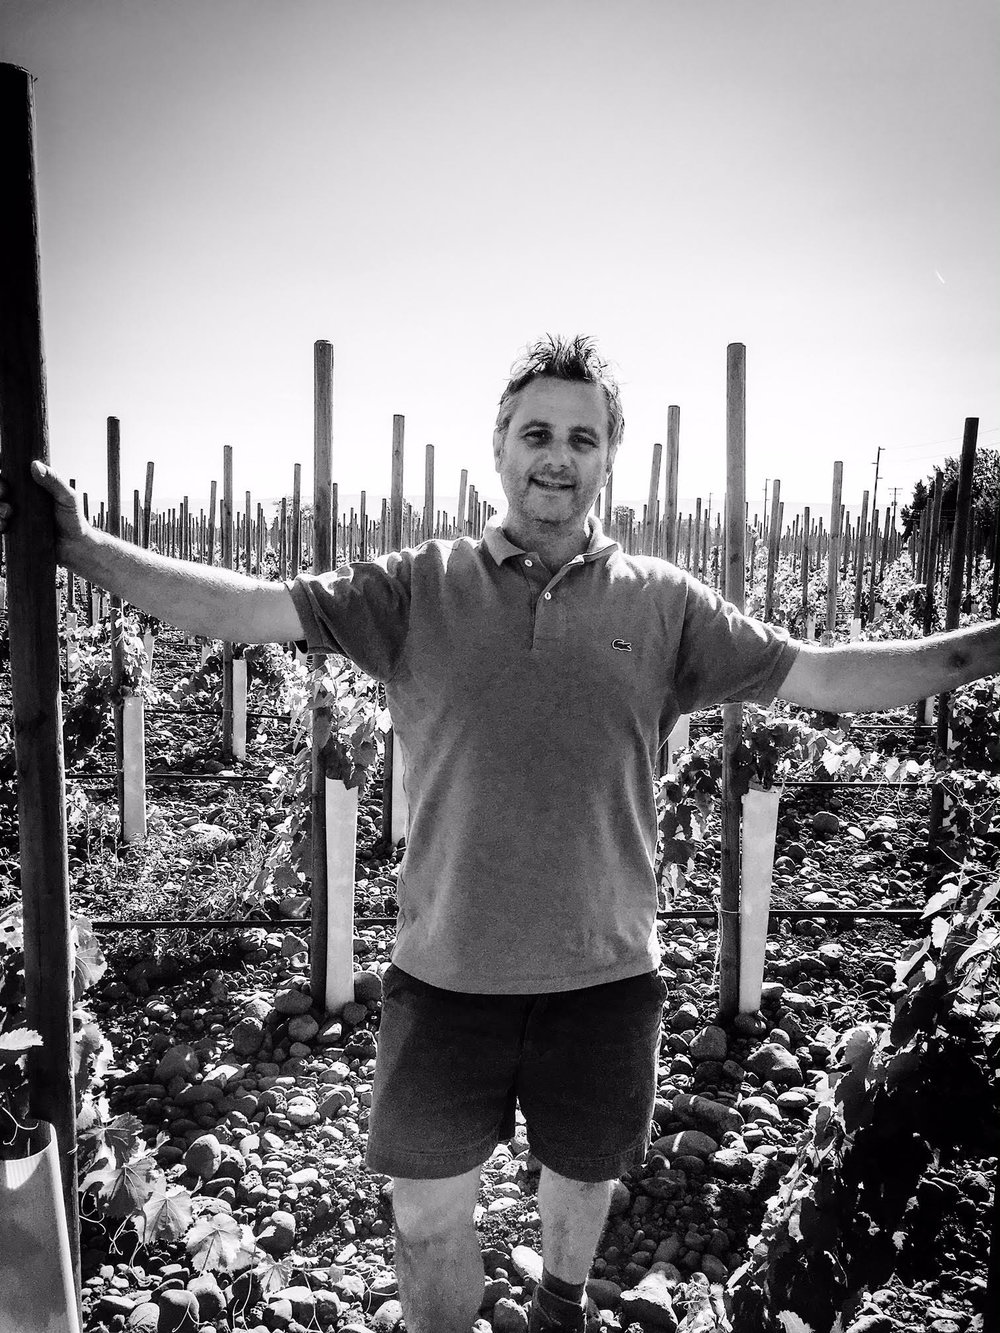 Walla Walla wine pioneer, Christophe Baron, of Cayuse Vineyards,has crafted a scintillating lineup of wines and is the well-deserved recipient 2017 Washington Wine Blog Winery of the Year.